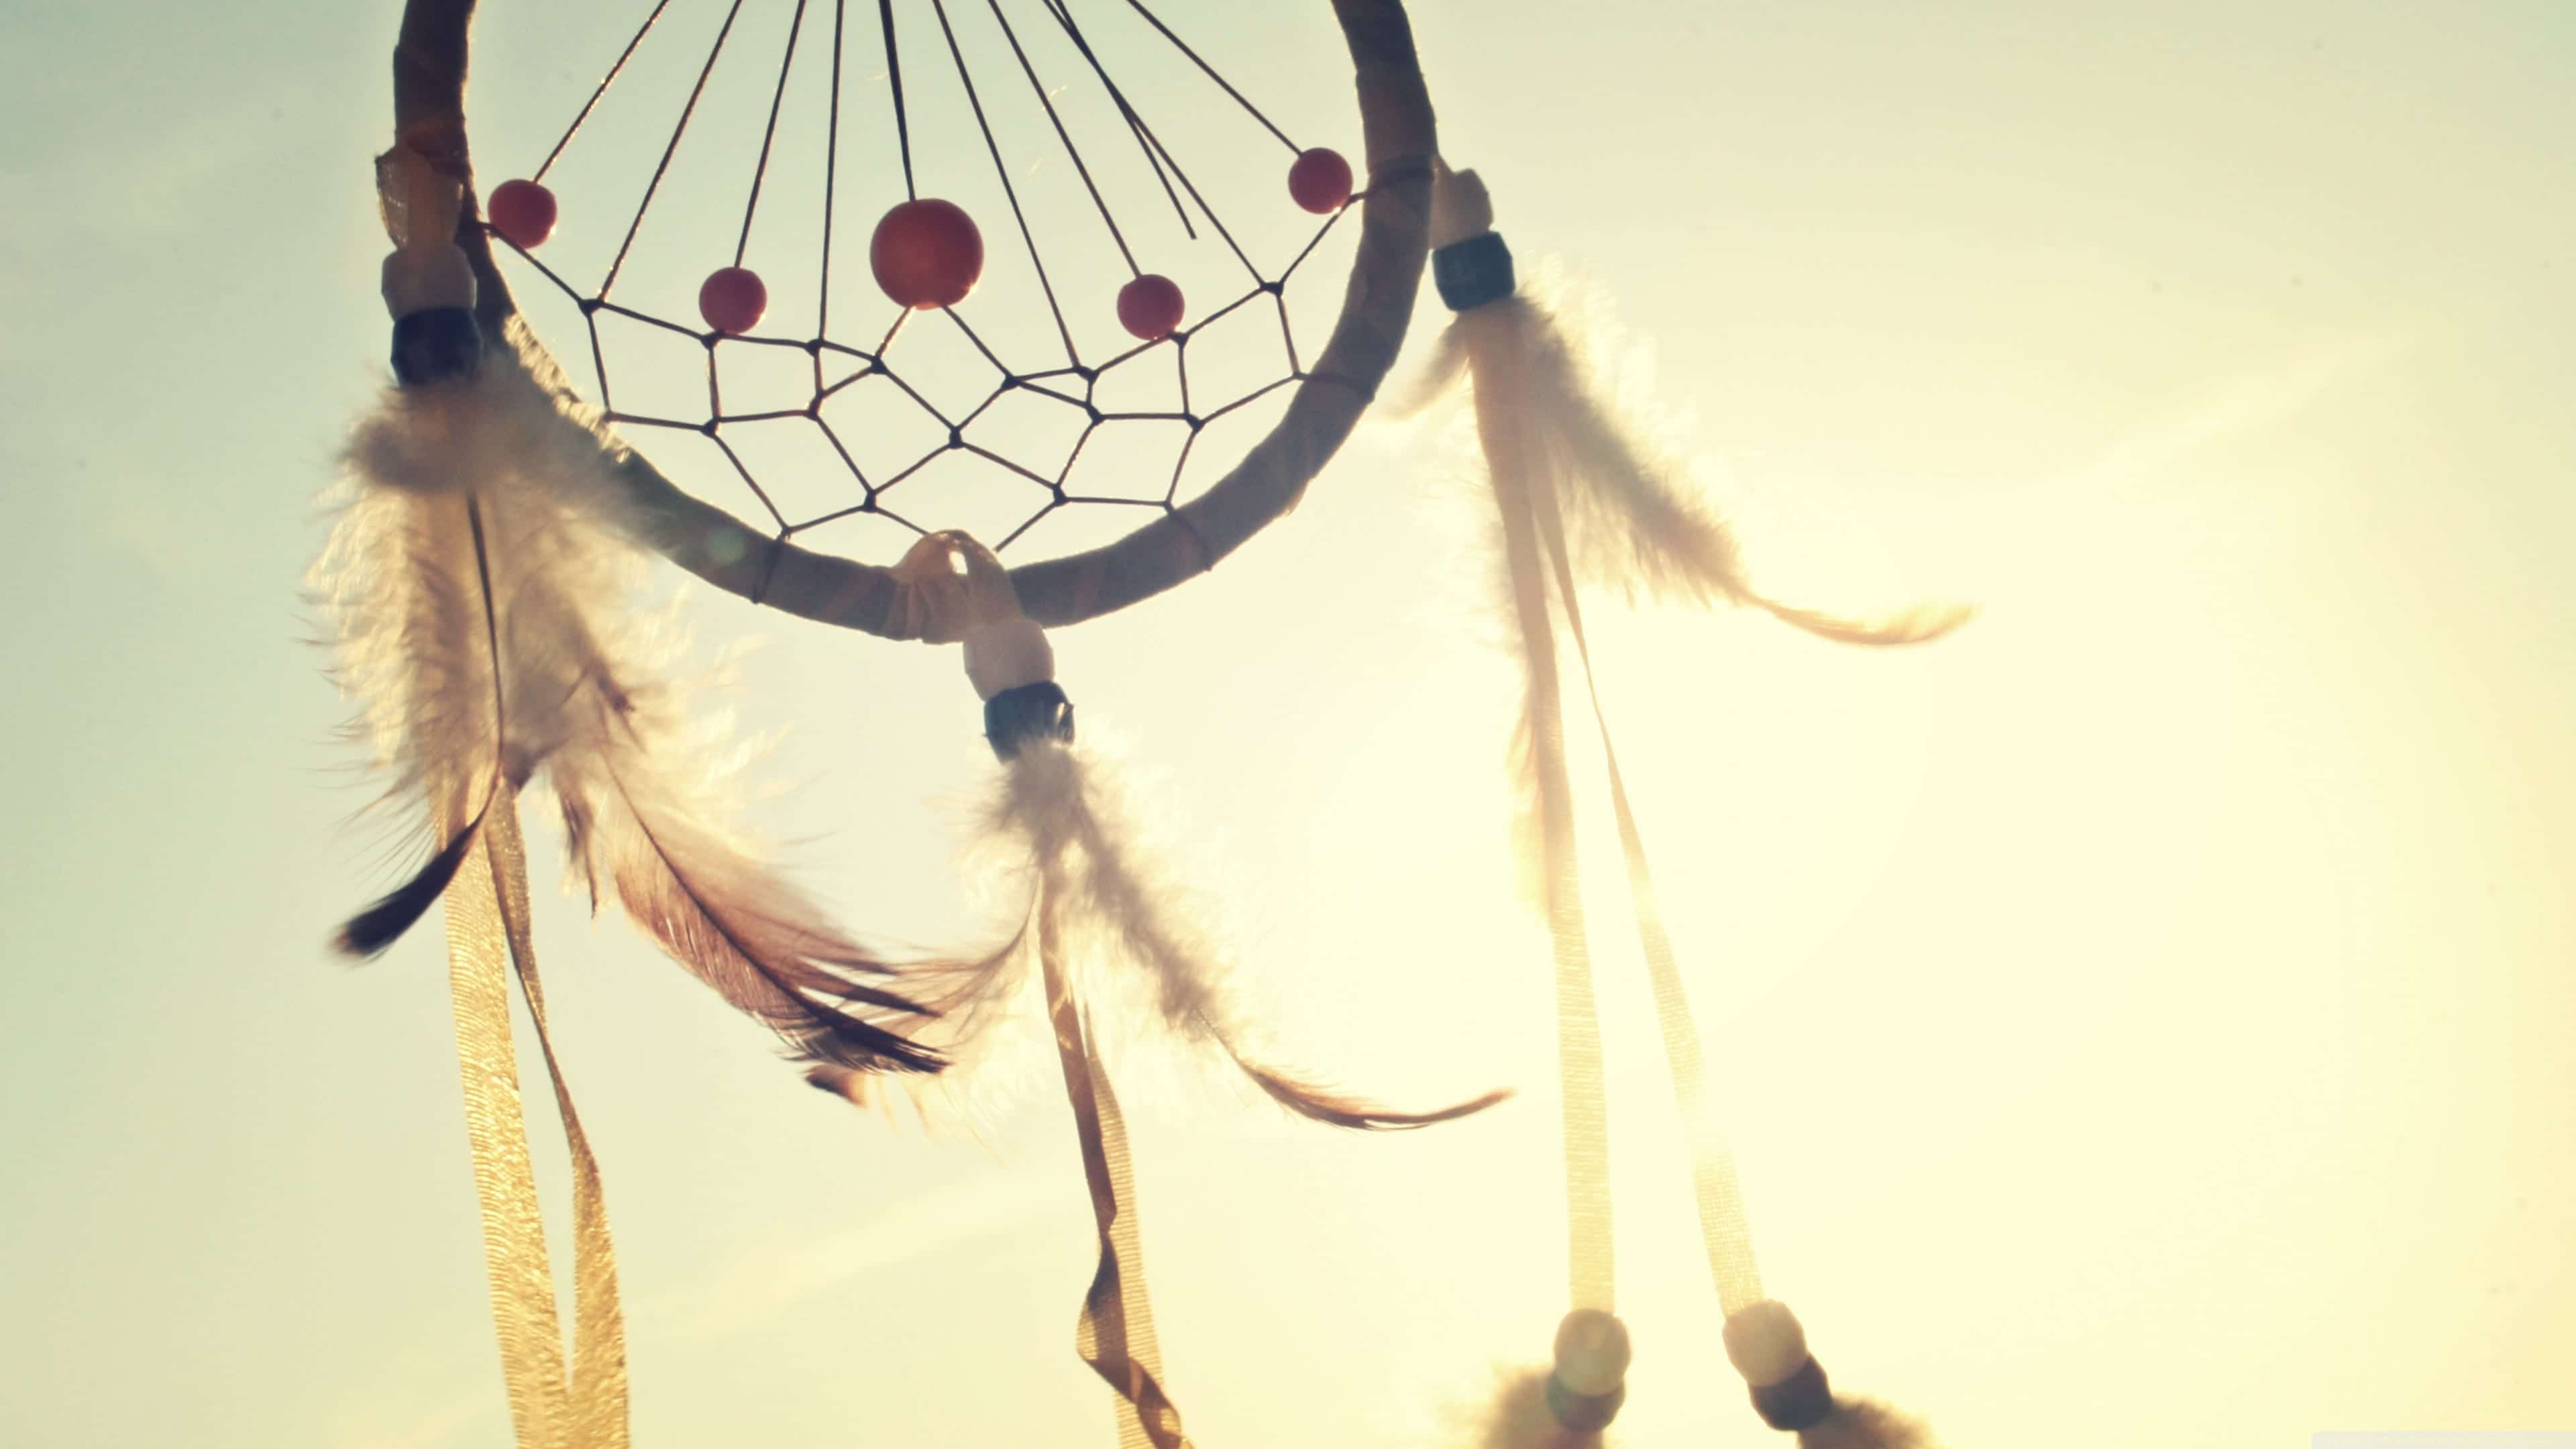 Dreamcatcher; image by Dyaa Eldin, via Unsplash.com.